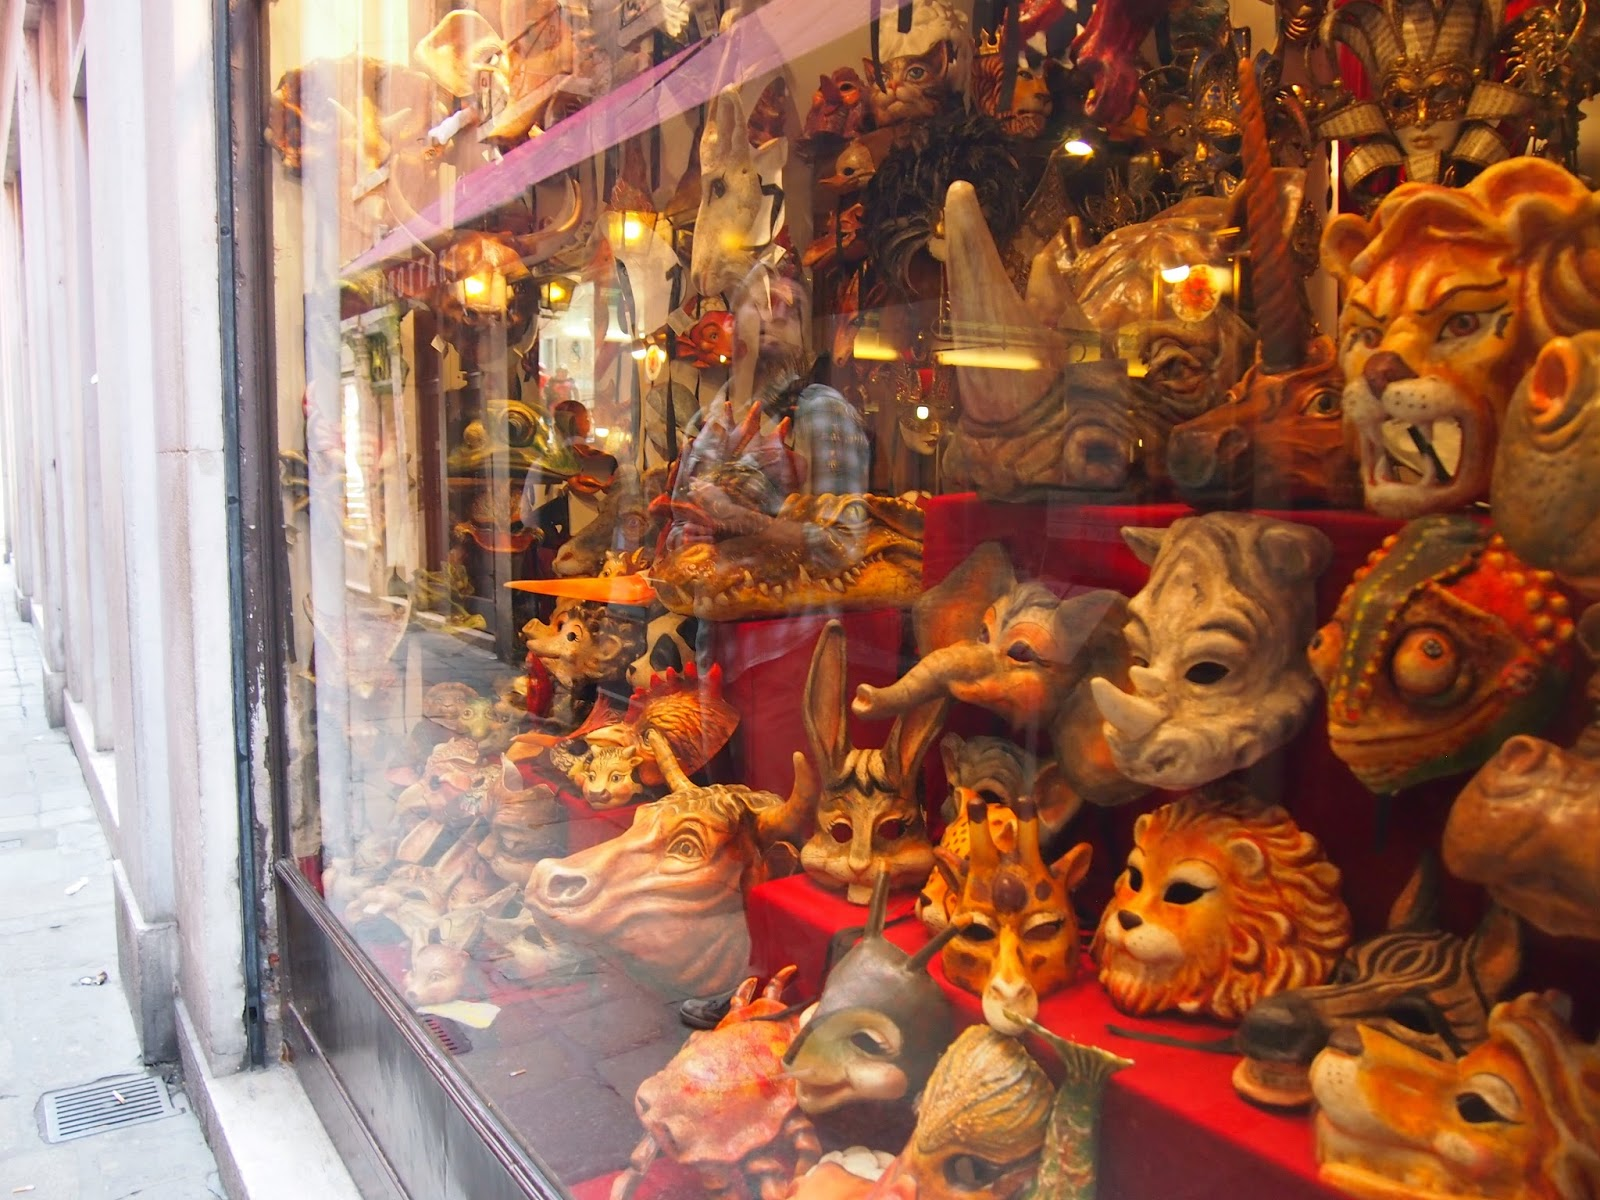 colorful animal masks in Venice, Italy